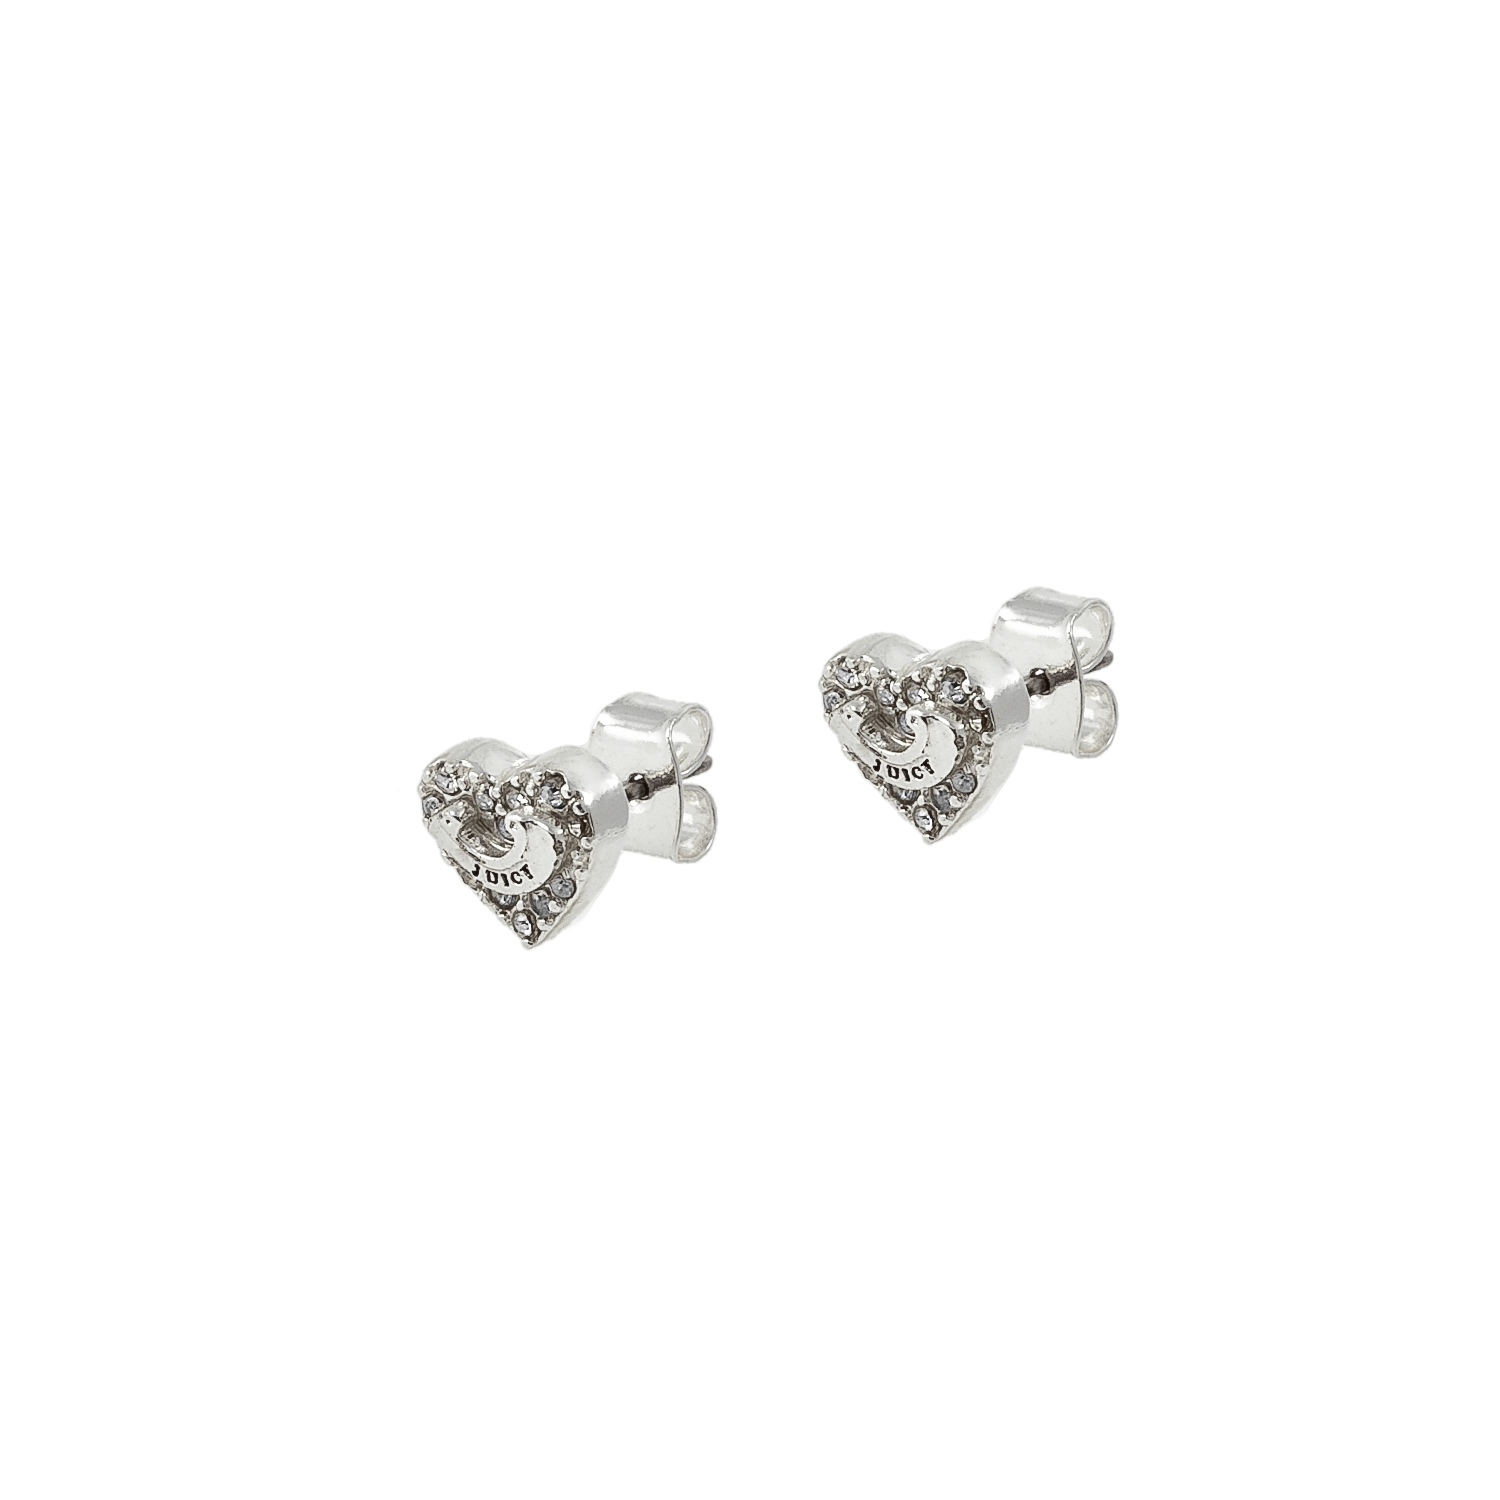 JUICY COUTURE – Σκουλαρίκια JUICY COUTURE PAVE HEART WISHES